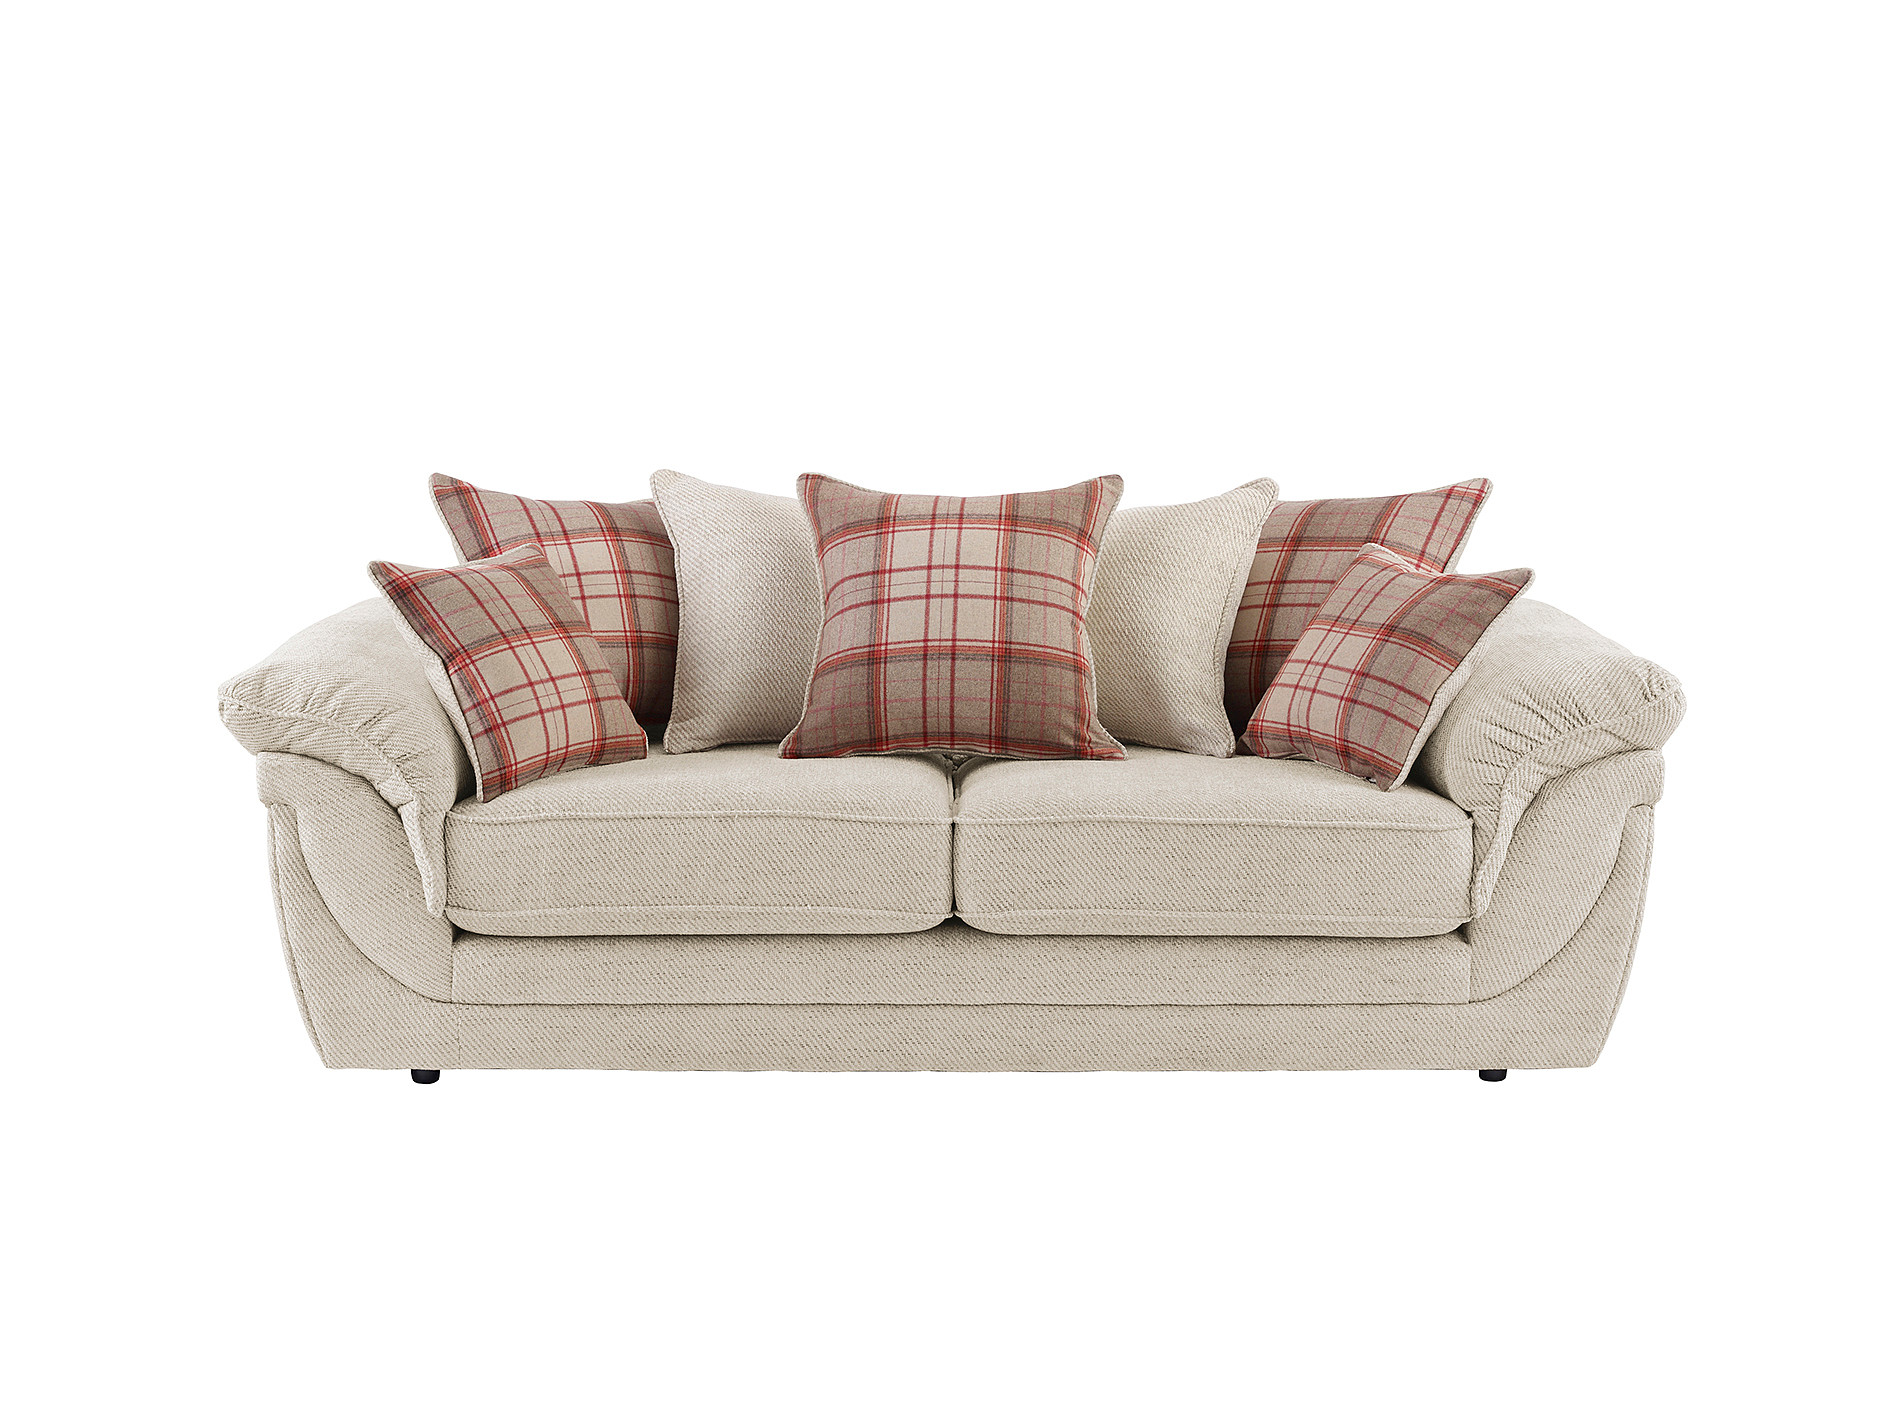 Sofastore Com Quality Sofas At Incredible Prices